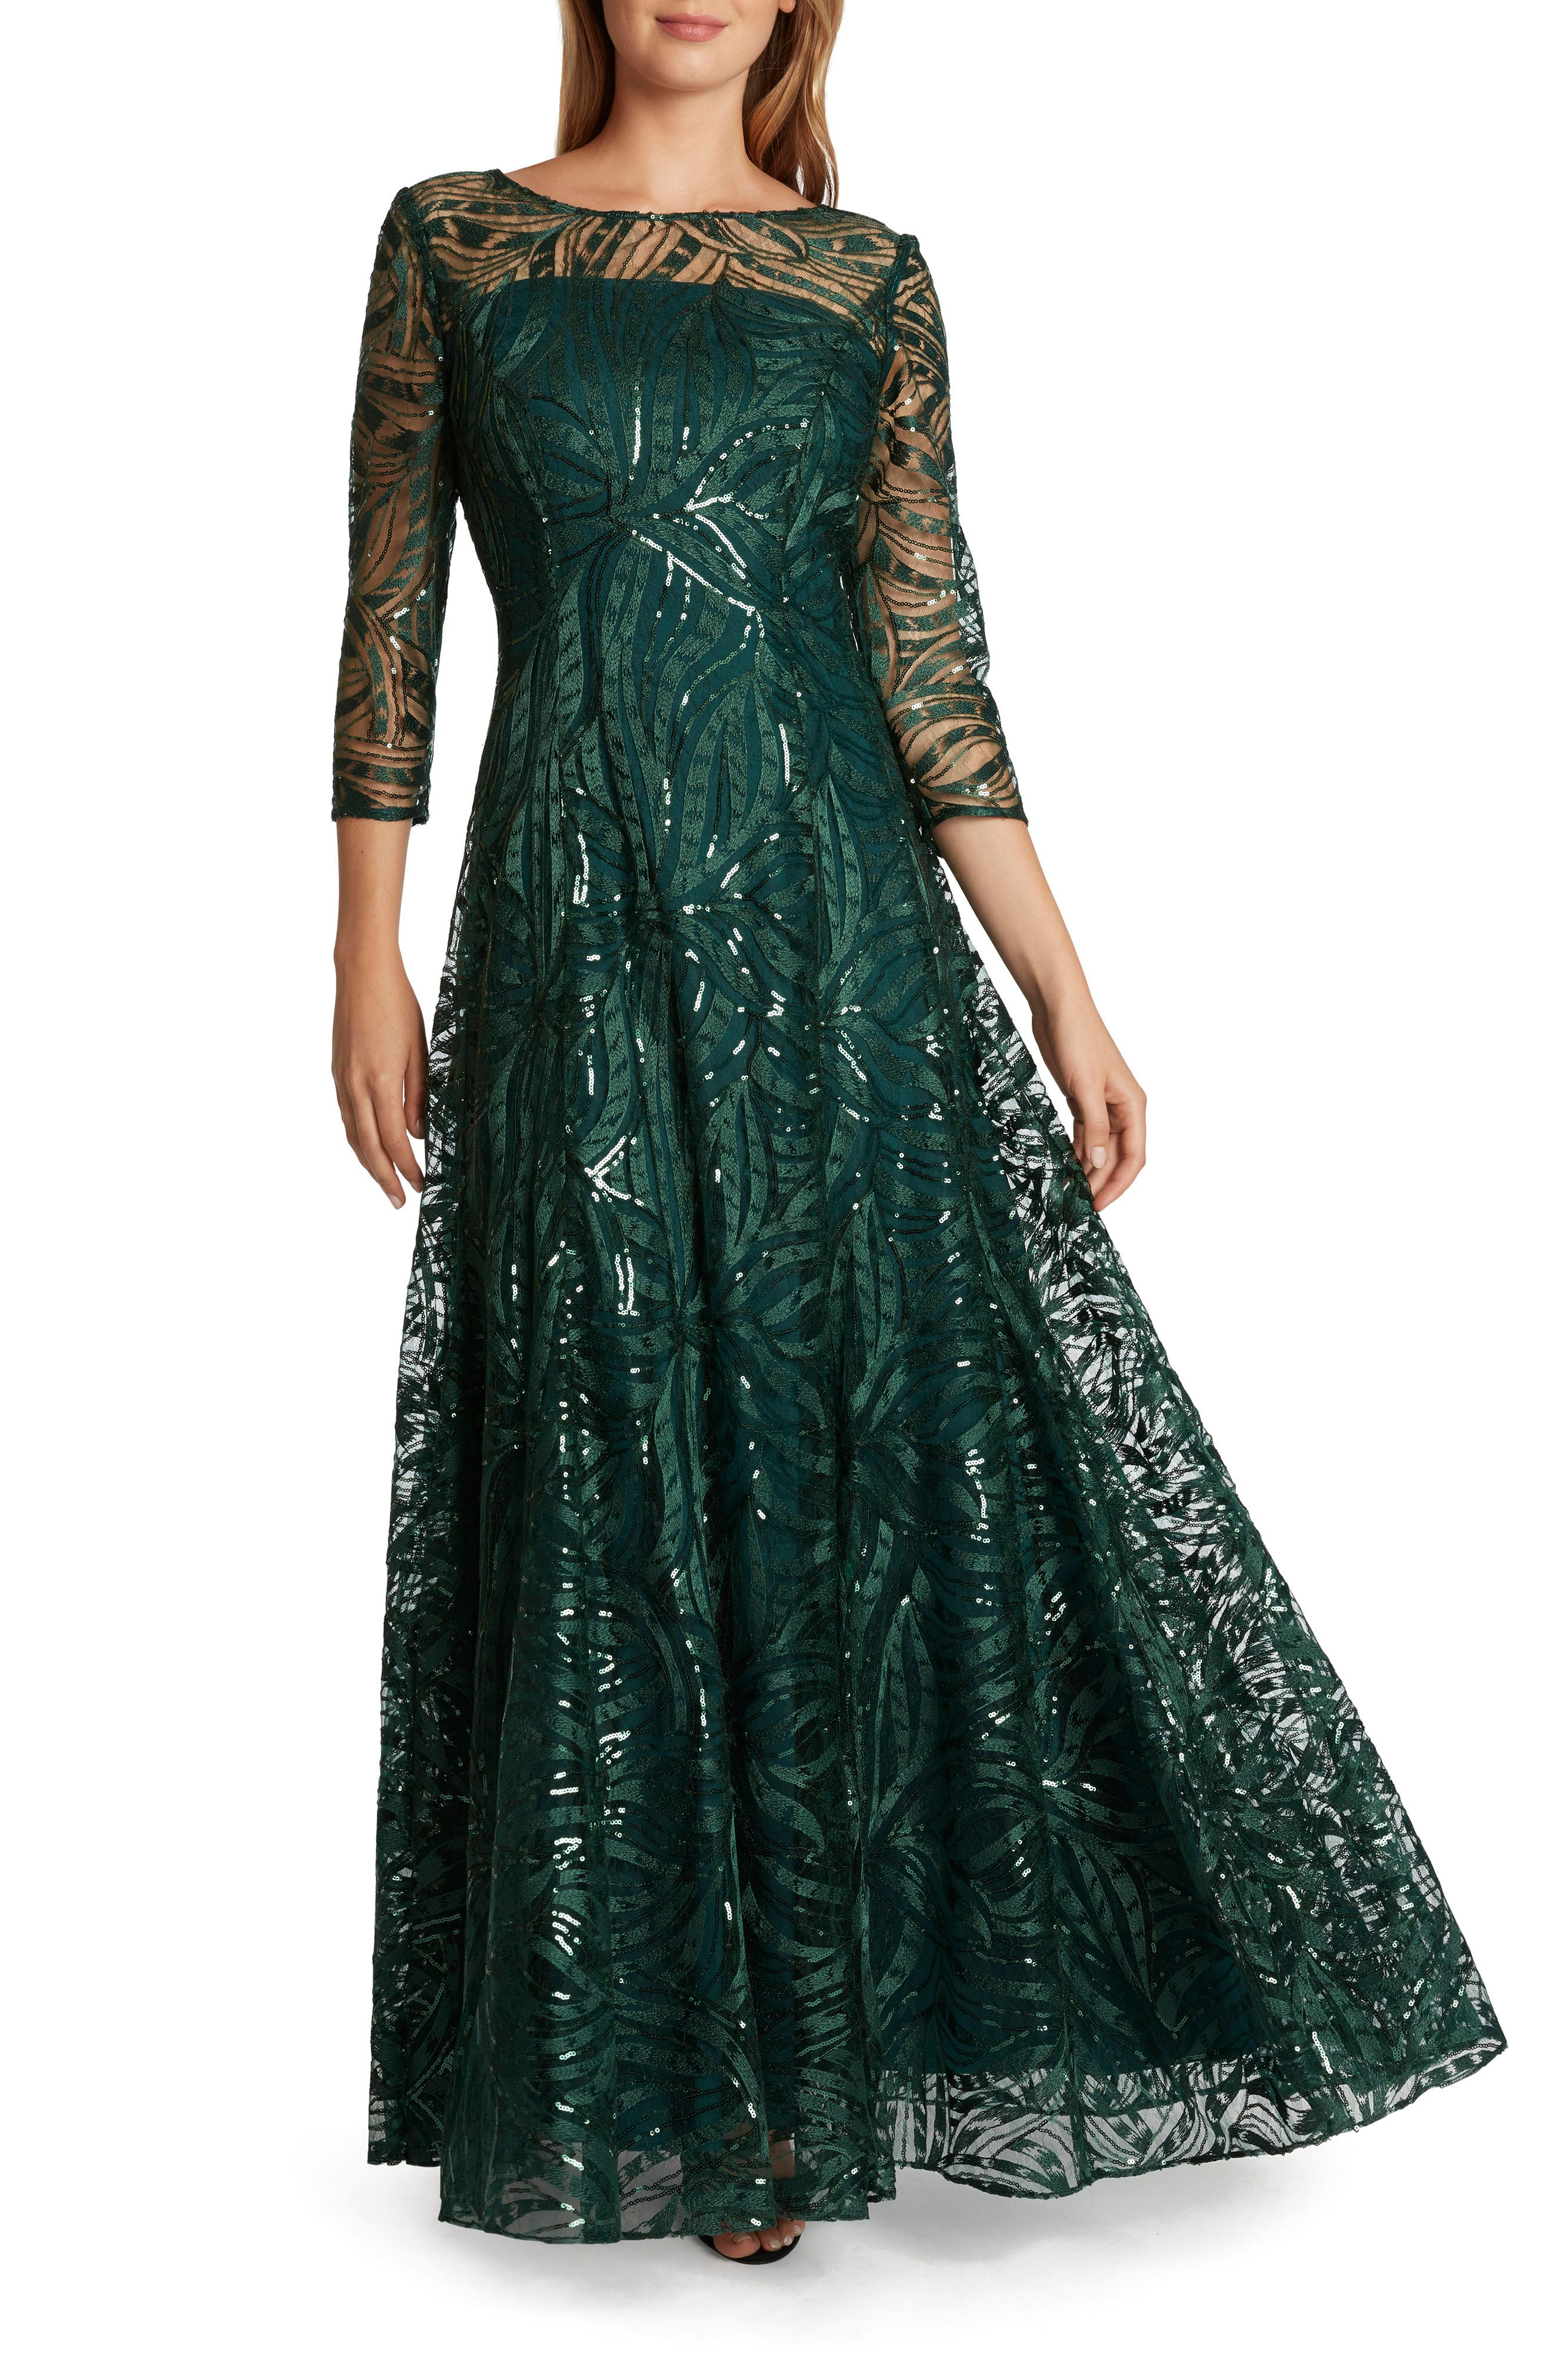 1950s History of Prom, Party, and Formal Dresses Womens Tahari Embroidered Sequin A-Line Gown Size 2 - Green $278.00 AT vintagedancer.com